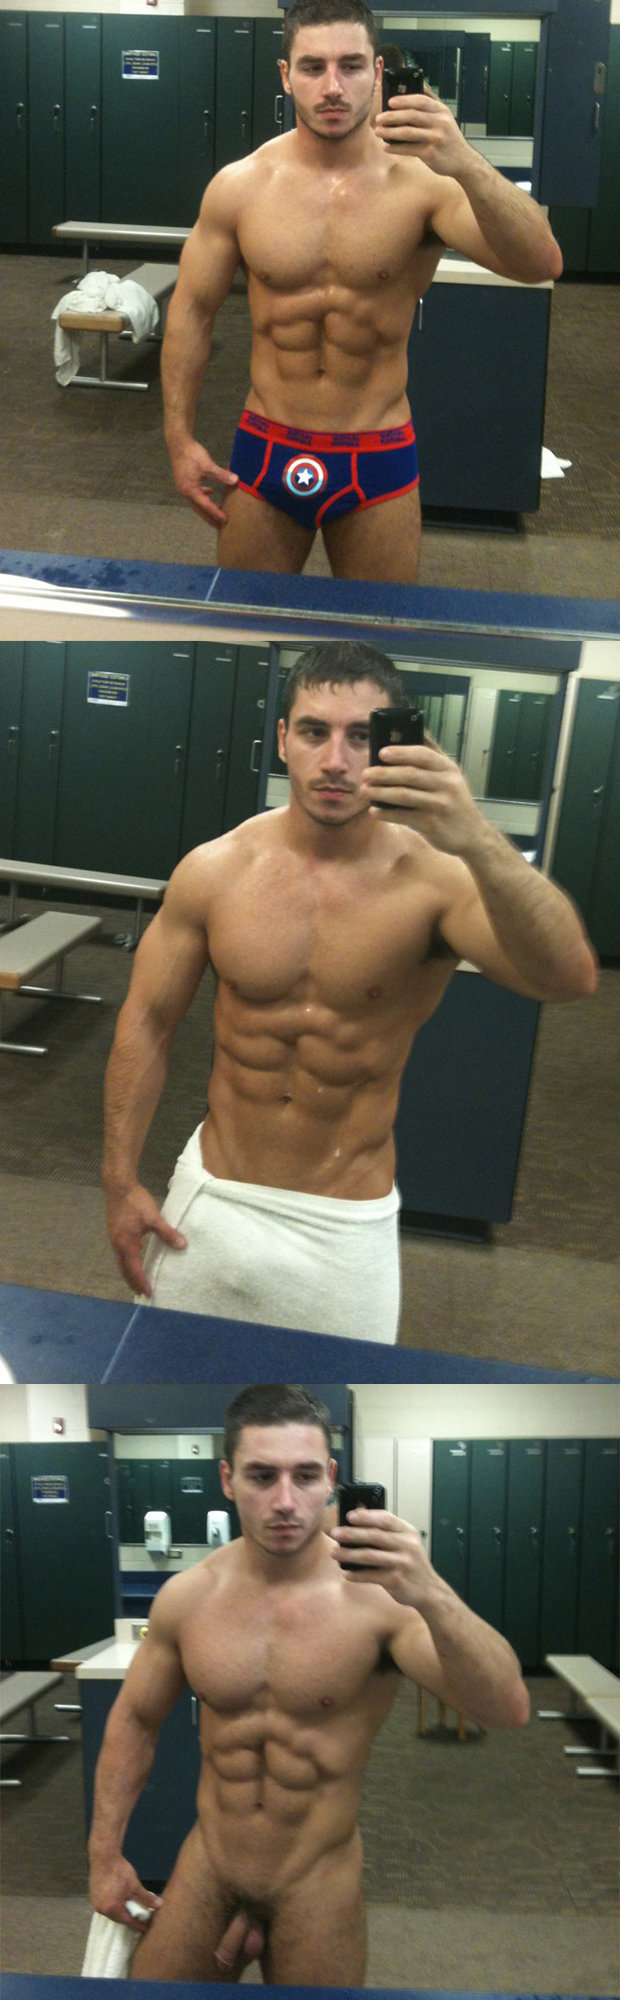 naked stud selfie lockerroom